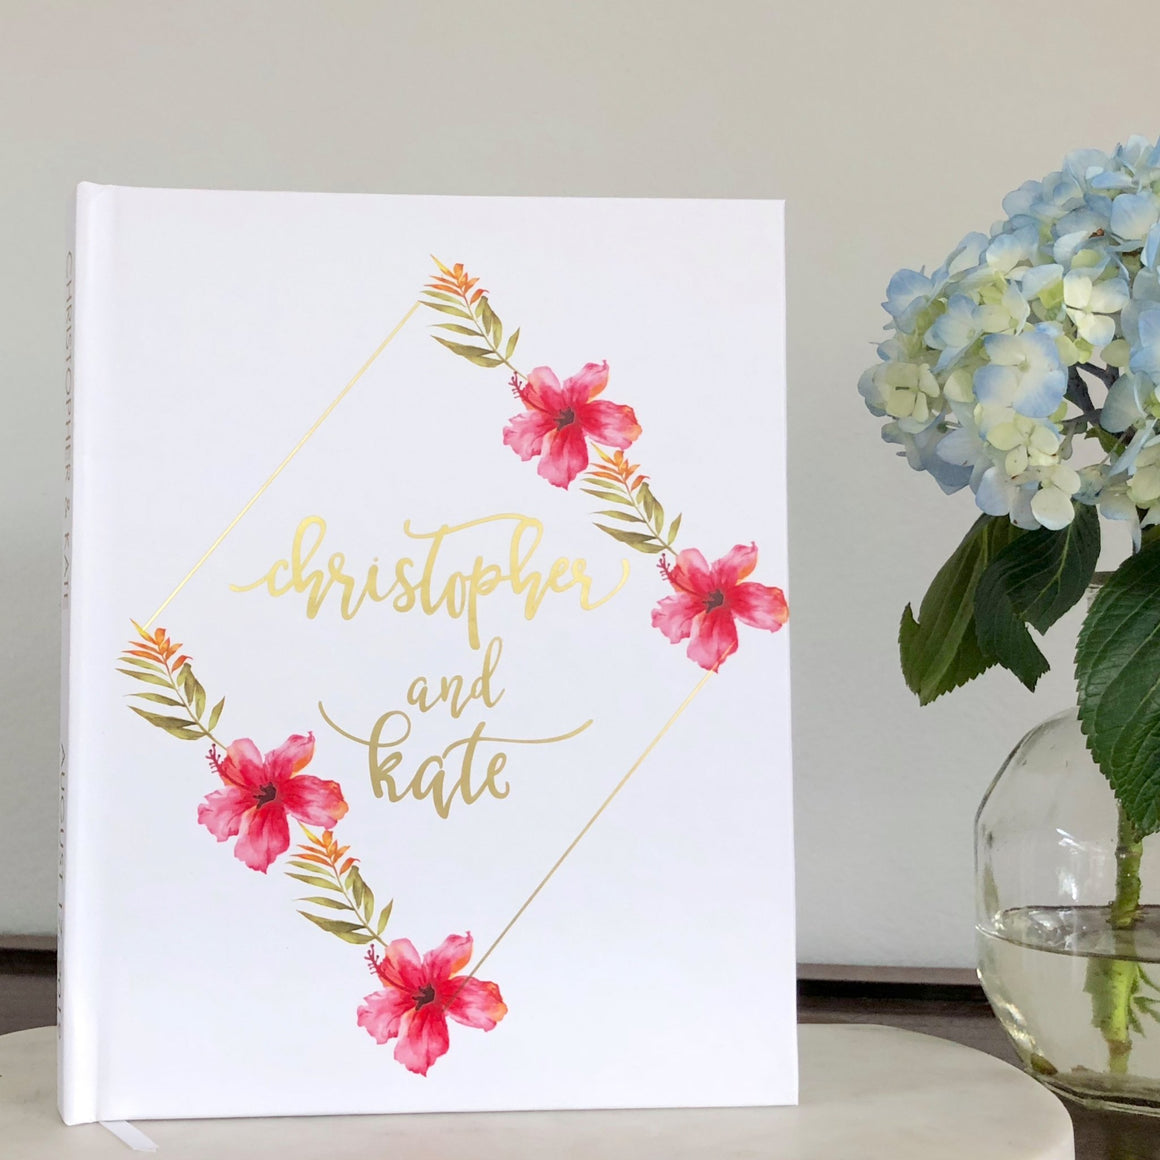 Matte Gold Foil Wedding Guest Book - The Kate - Pretty Collected